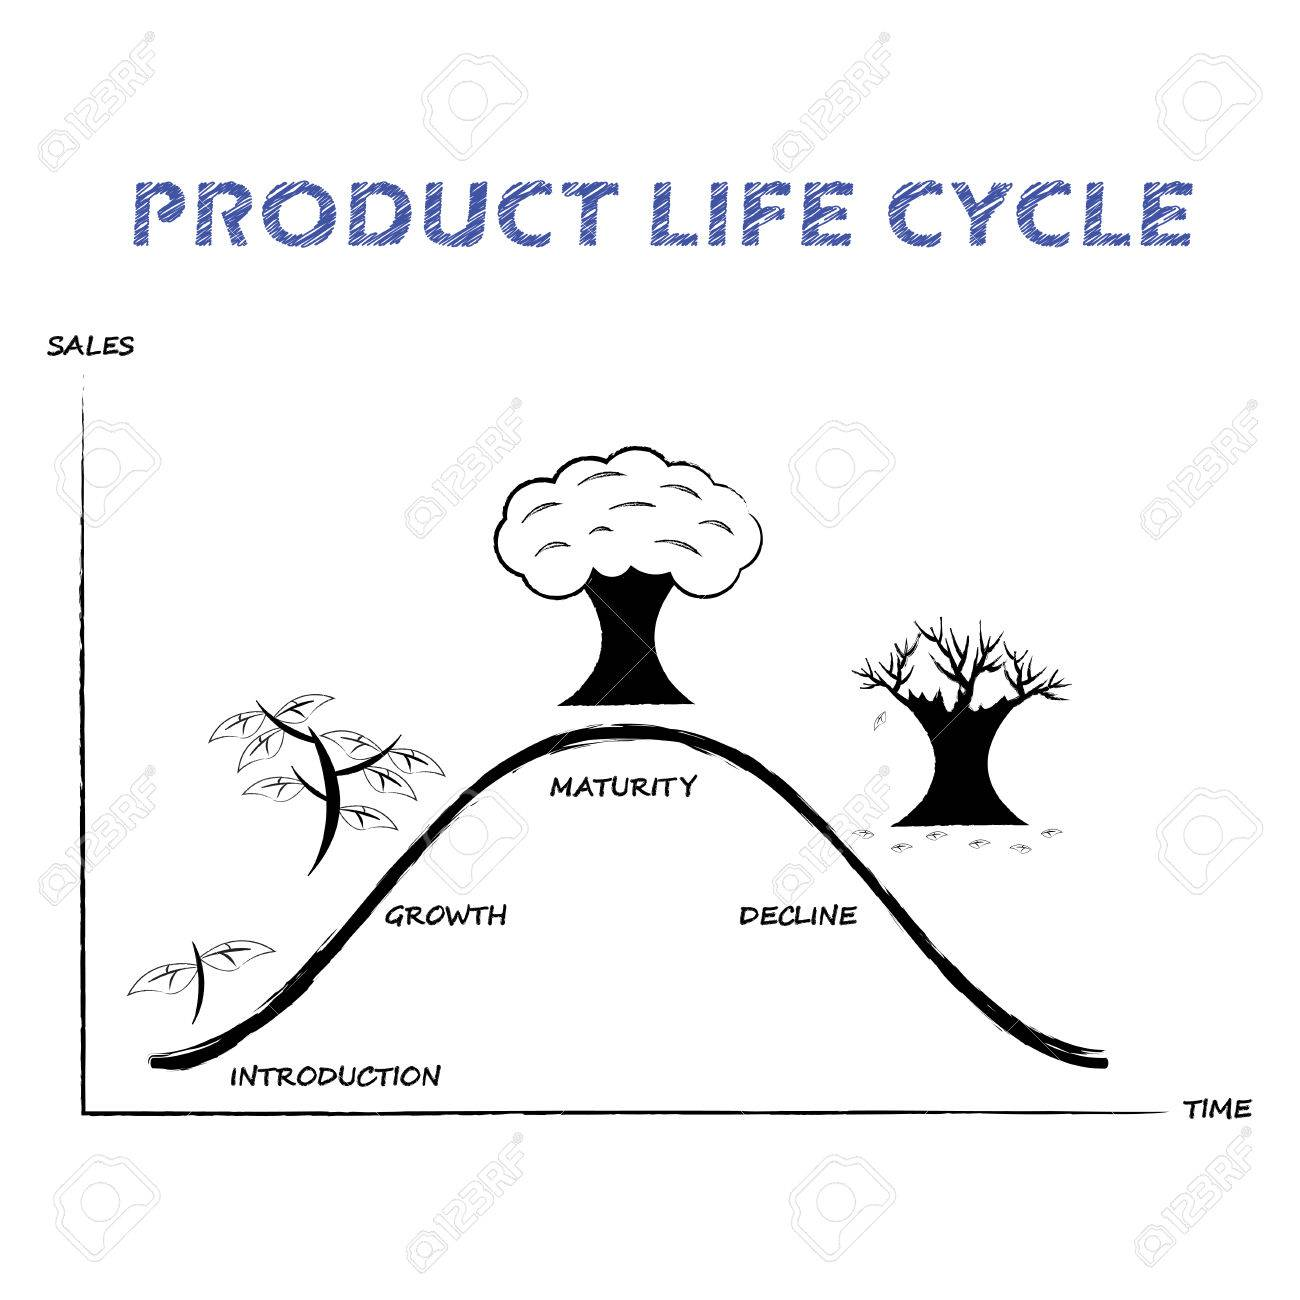 hight resolution of black white product life cycle diagram is drew by pencil or charcoal on white background